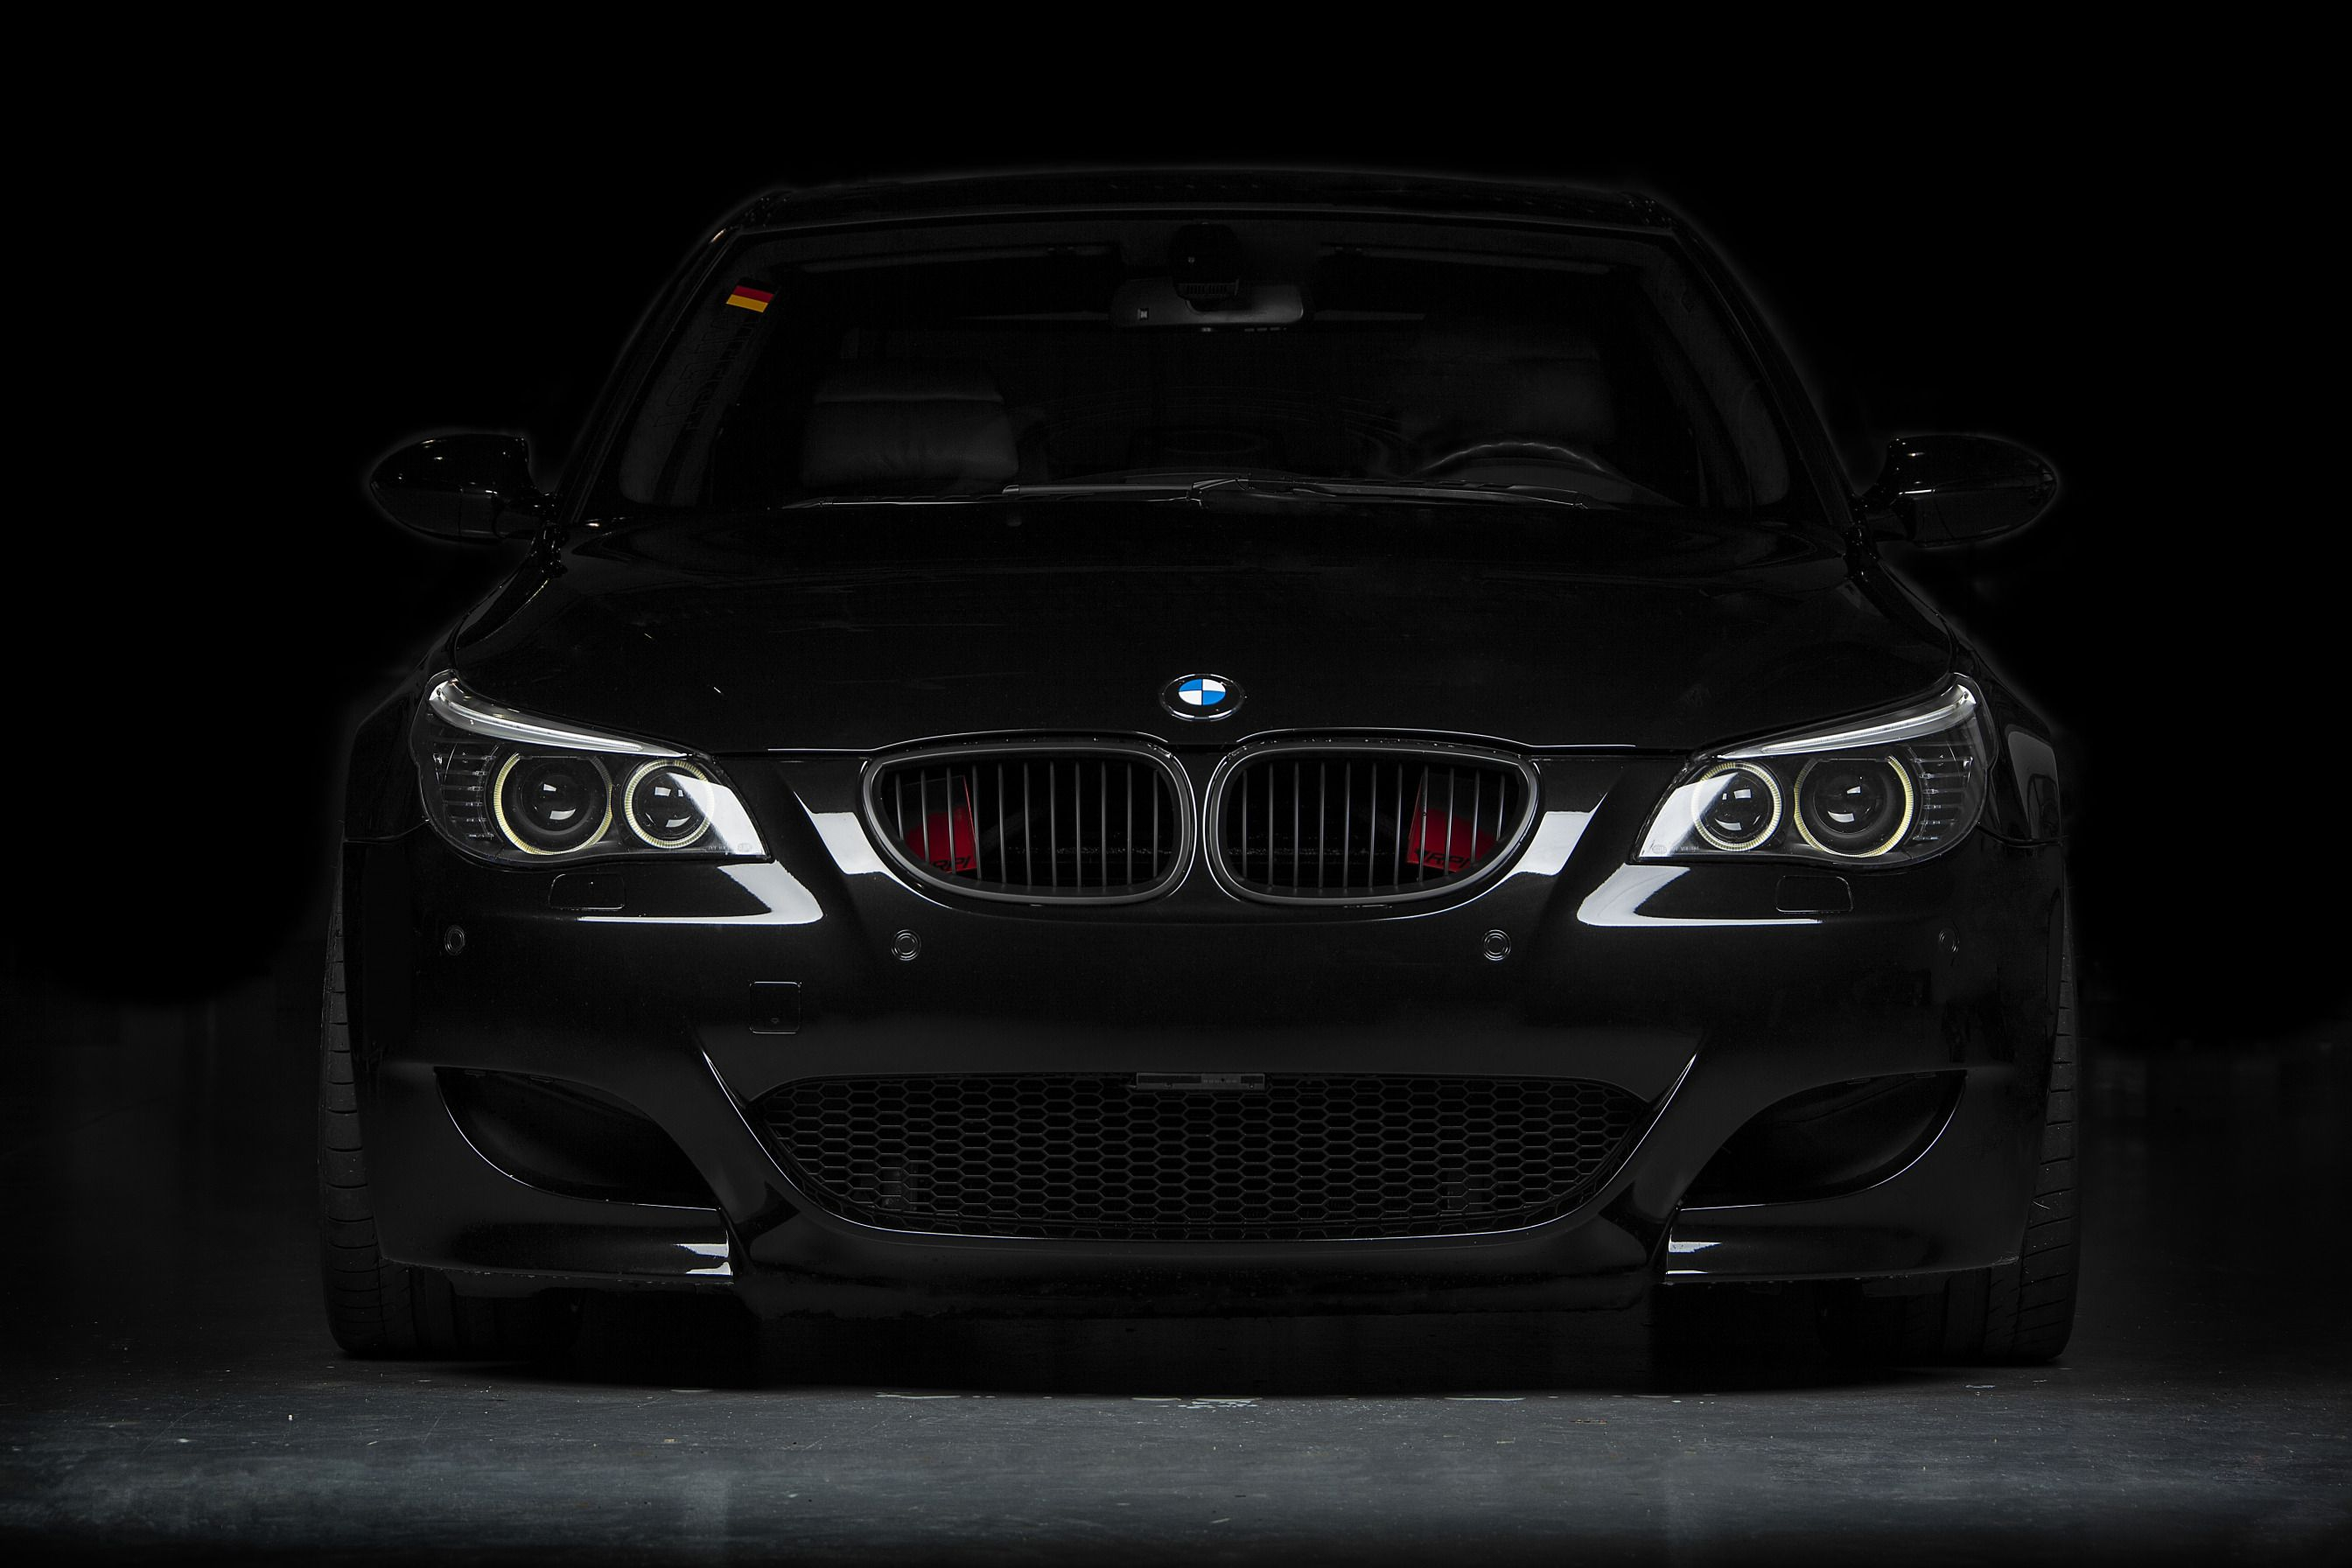 Download Wallpaper Black Bmw Bmw Black The Front E60 Section